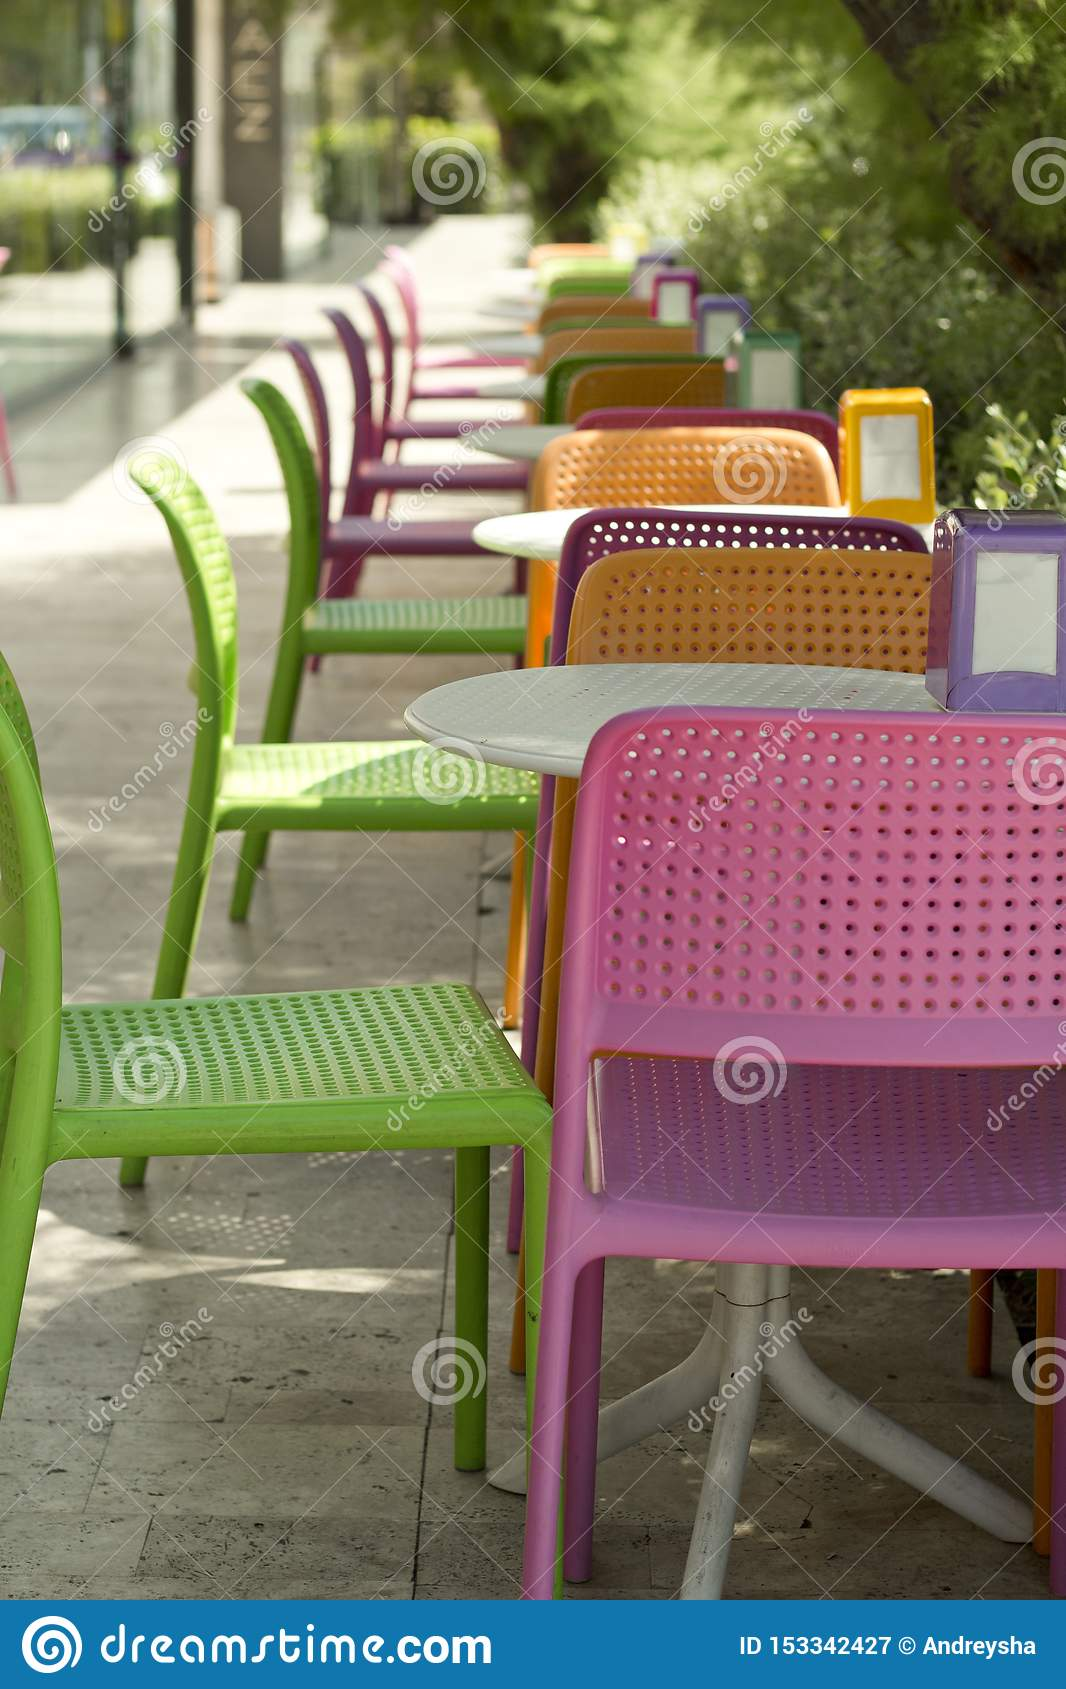 Plastic Colorful Tables And Chairs In The Cafe Stock Image Image Of Bright Hotel 153342427